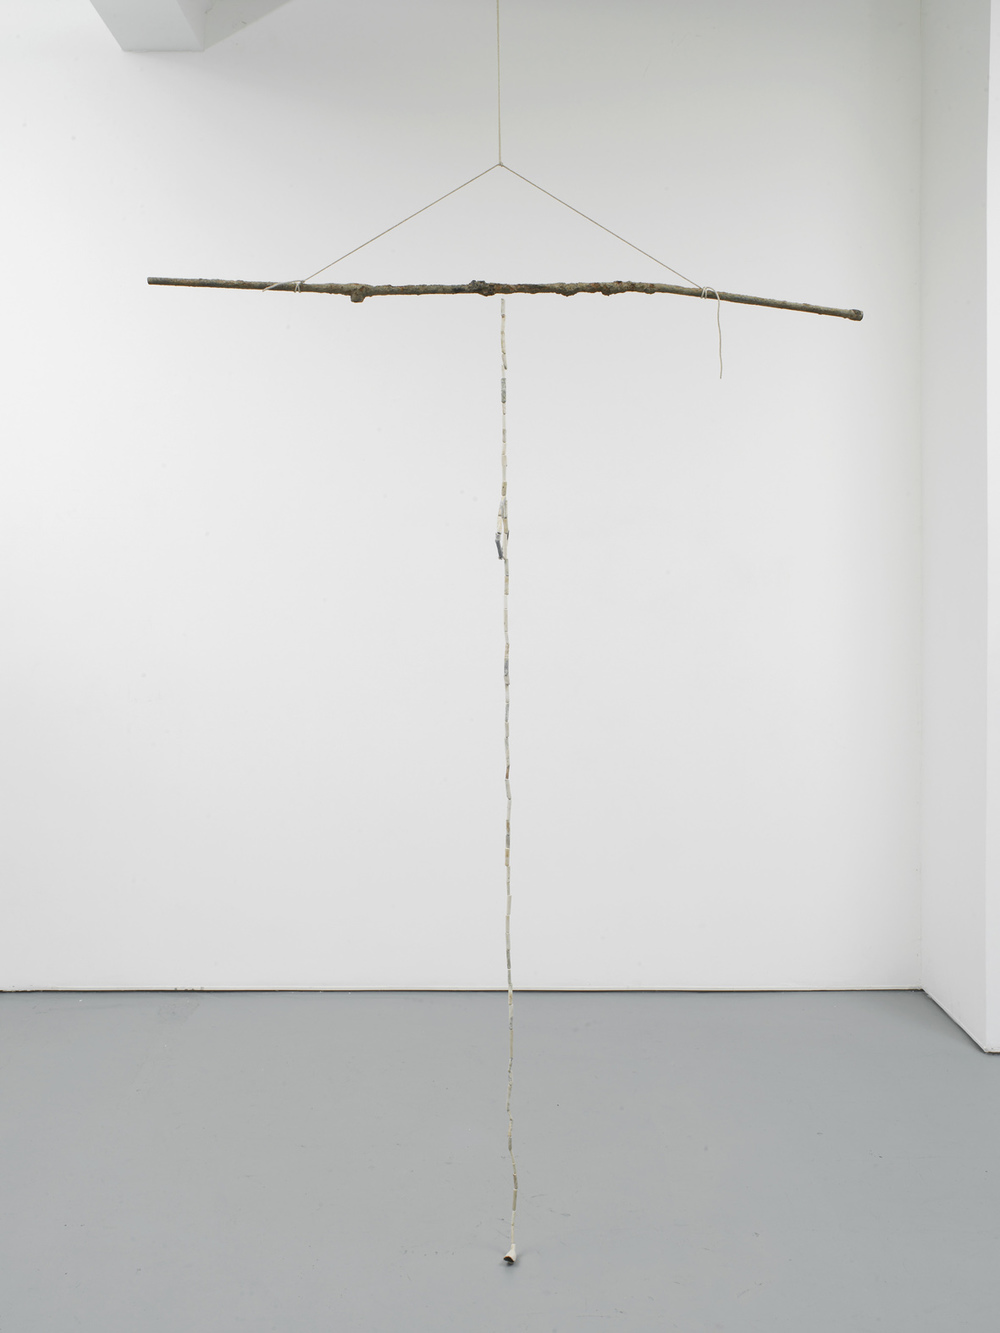 Franziska Lantz THAMES, no title 2016 Wood, metal, clay pipes, rope, string 189 x 130 x 5 cm / 74.4 x 51.1 x 1.9 in HS12-FL5512S